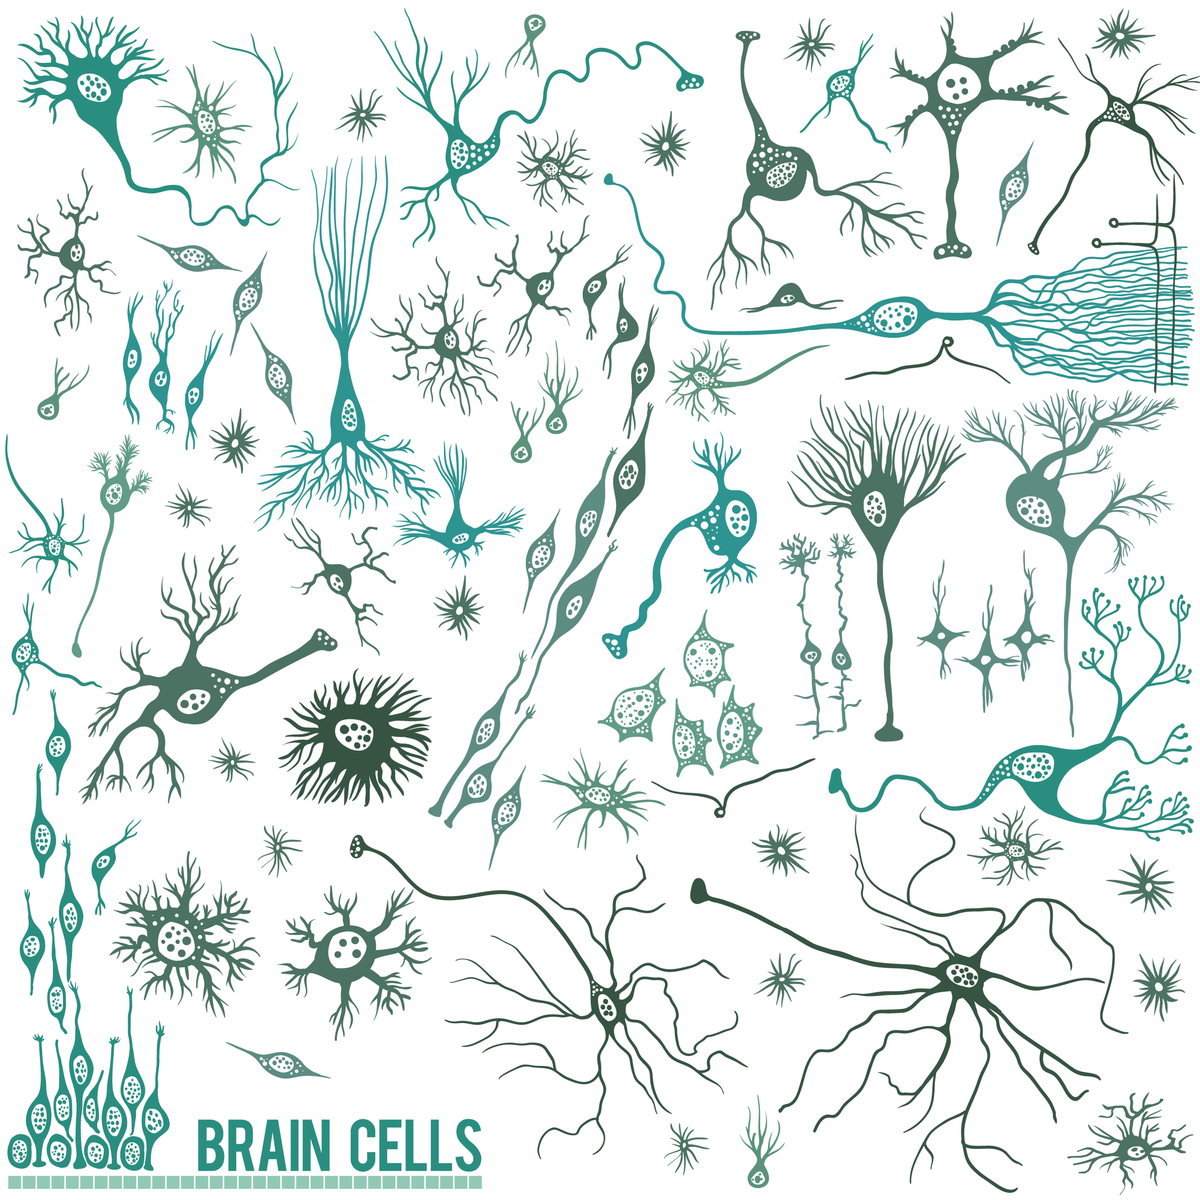 Brain cells: There are lots of different cell types in the brain; neurons are just one. But neurons happen to be a particularly vulnerable cell type in HD.